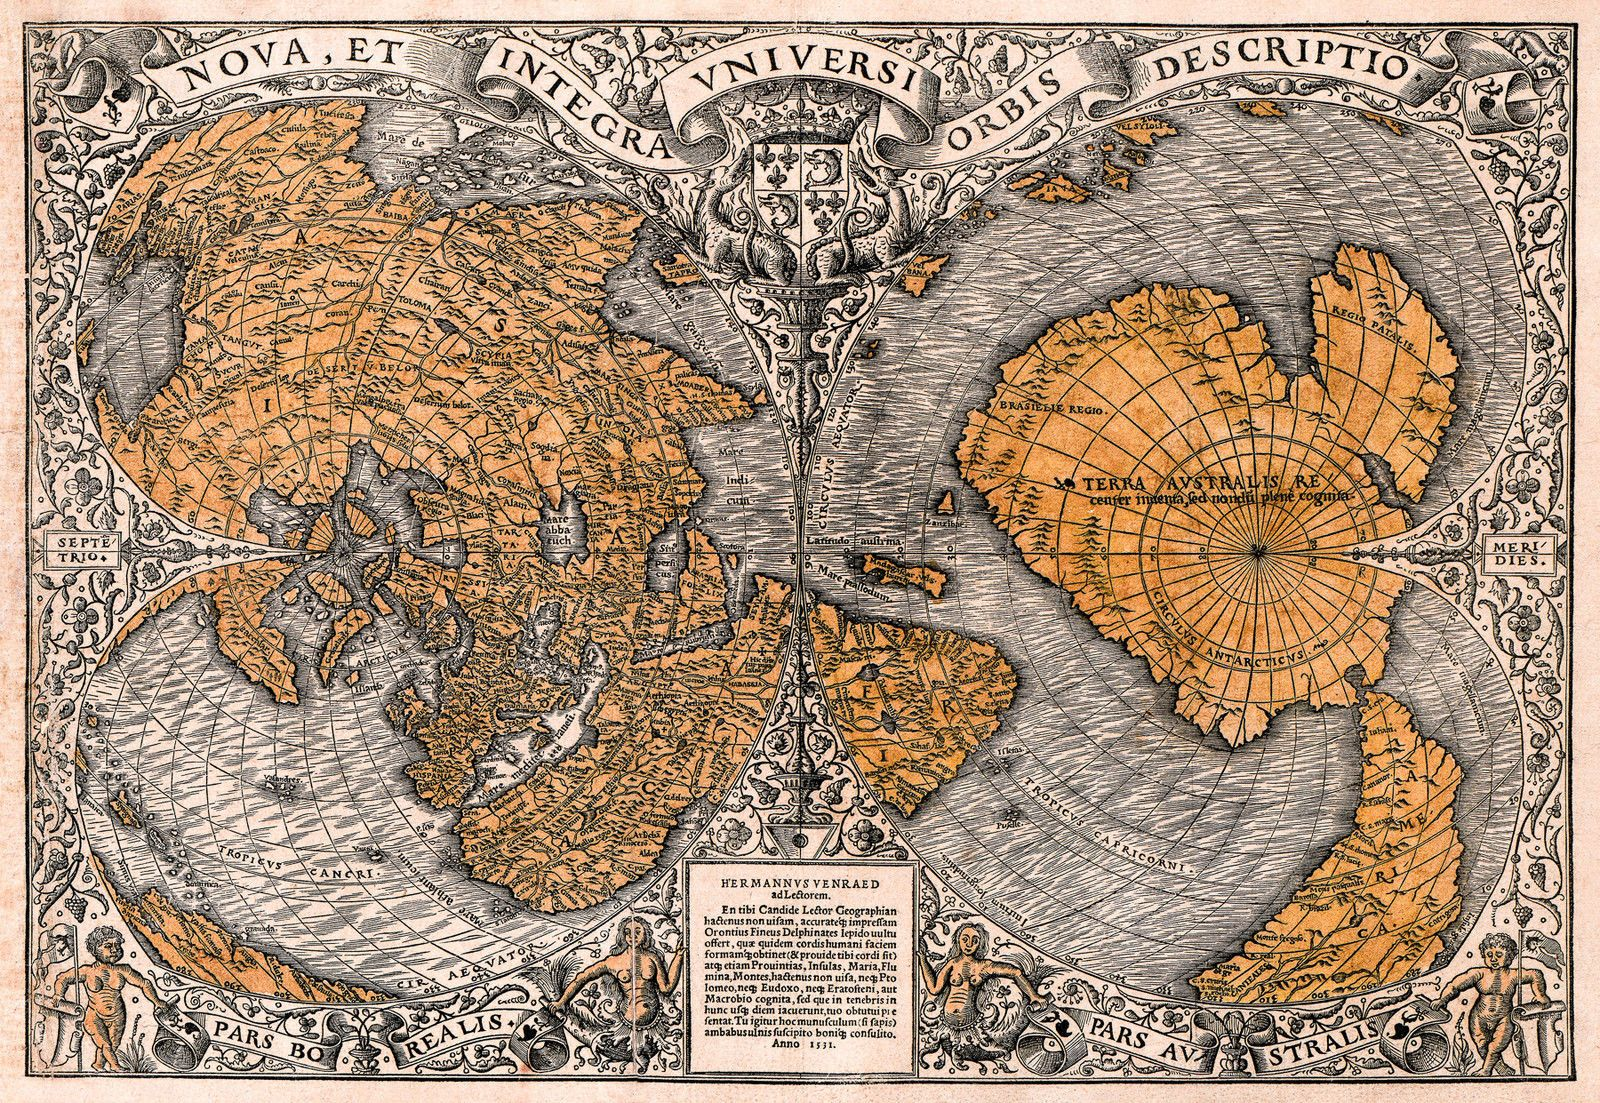 Antique world map old vintage map 1531 fade resistant hd art antique world map old vintage map 1531 fade resistant hd art print or gumiabroncs Choice Image